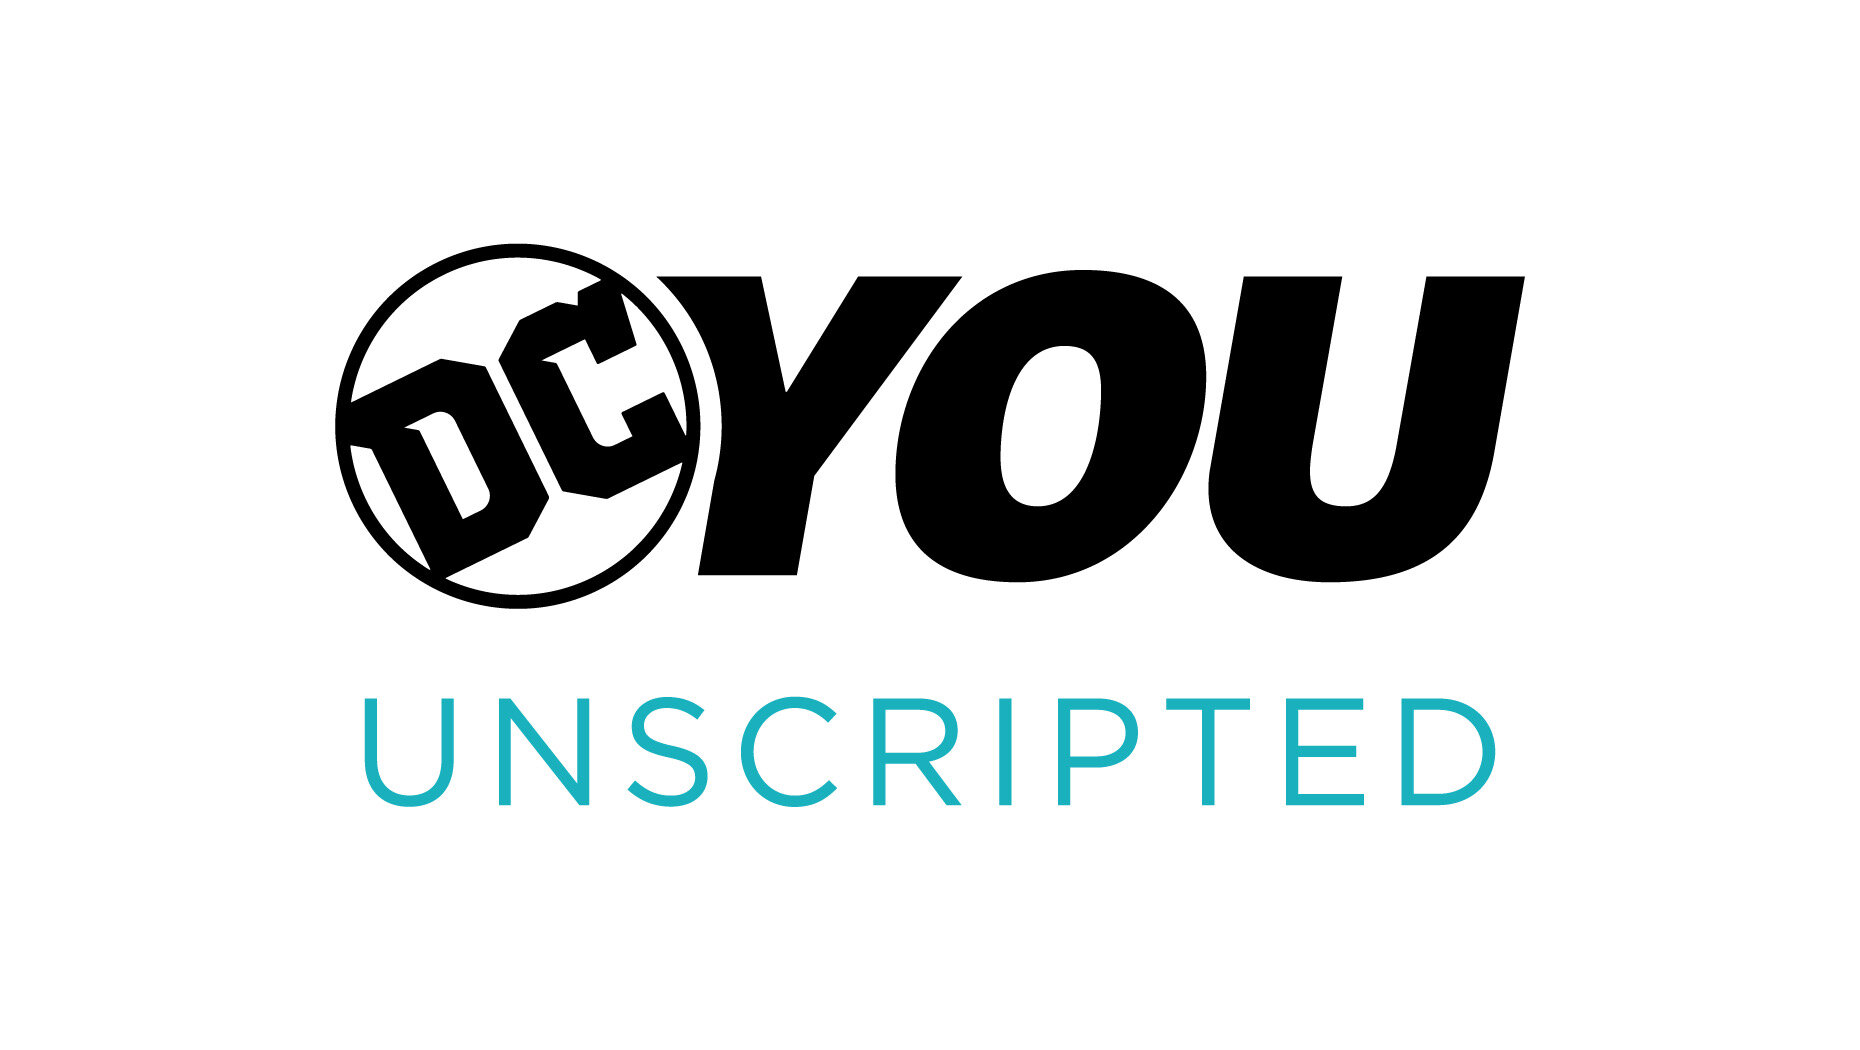 DCYOU Unscripted Logo.jpeg